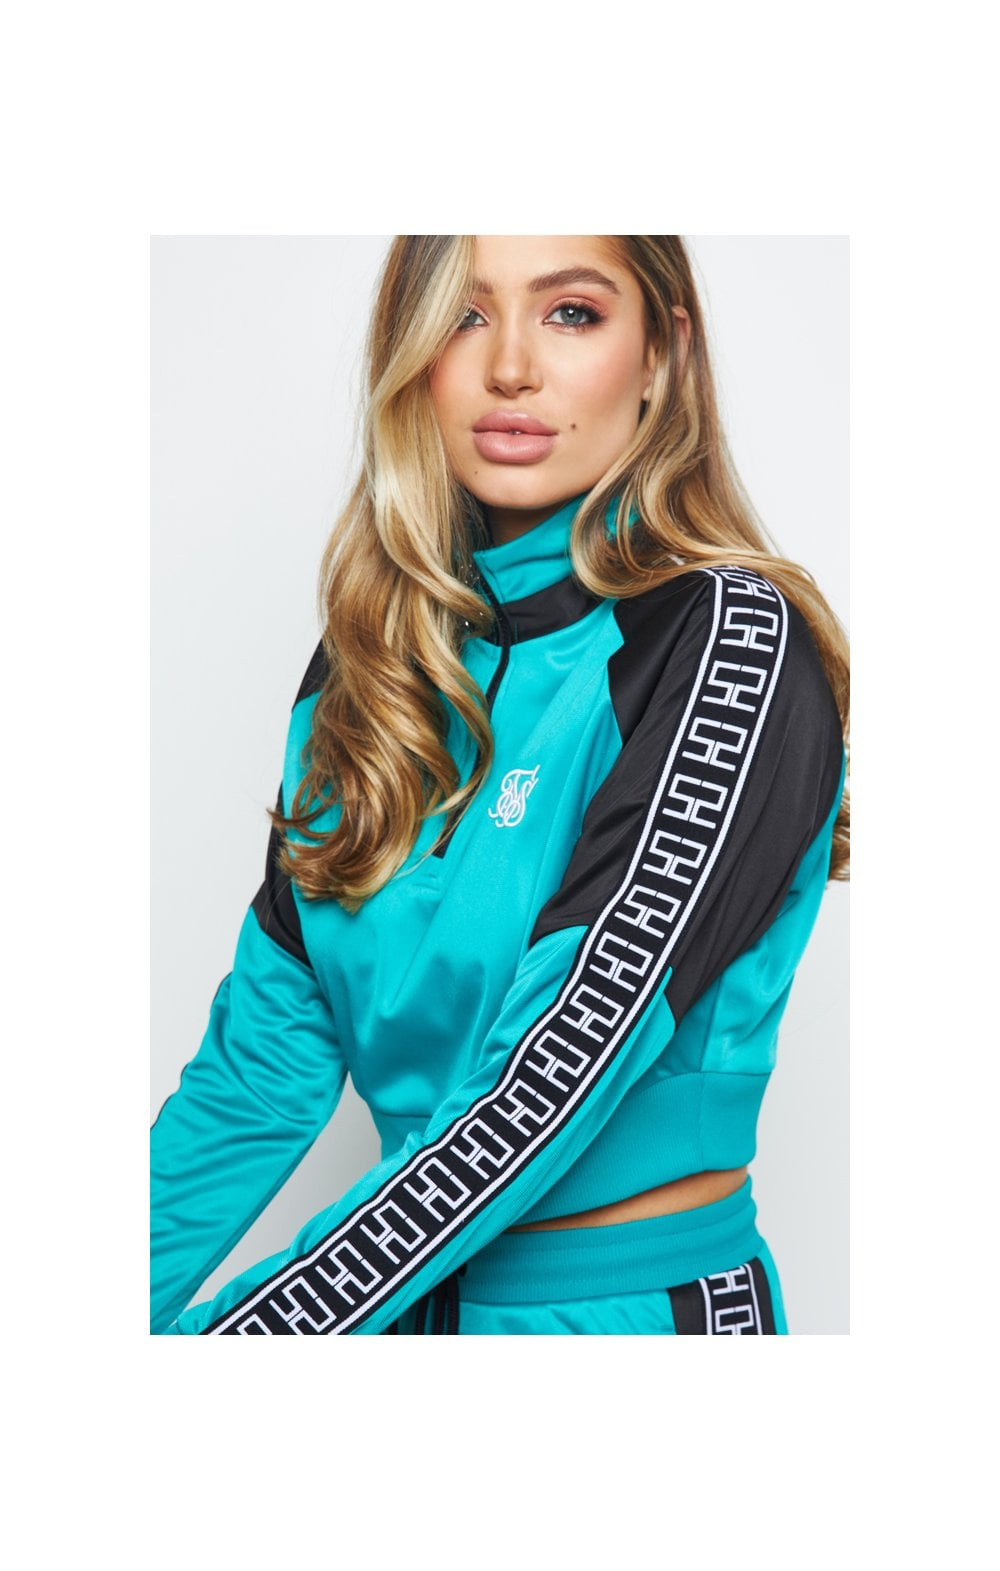 SikSilk Azure Track Top - Teal (2)